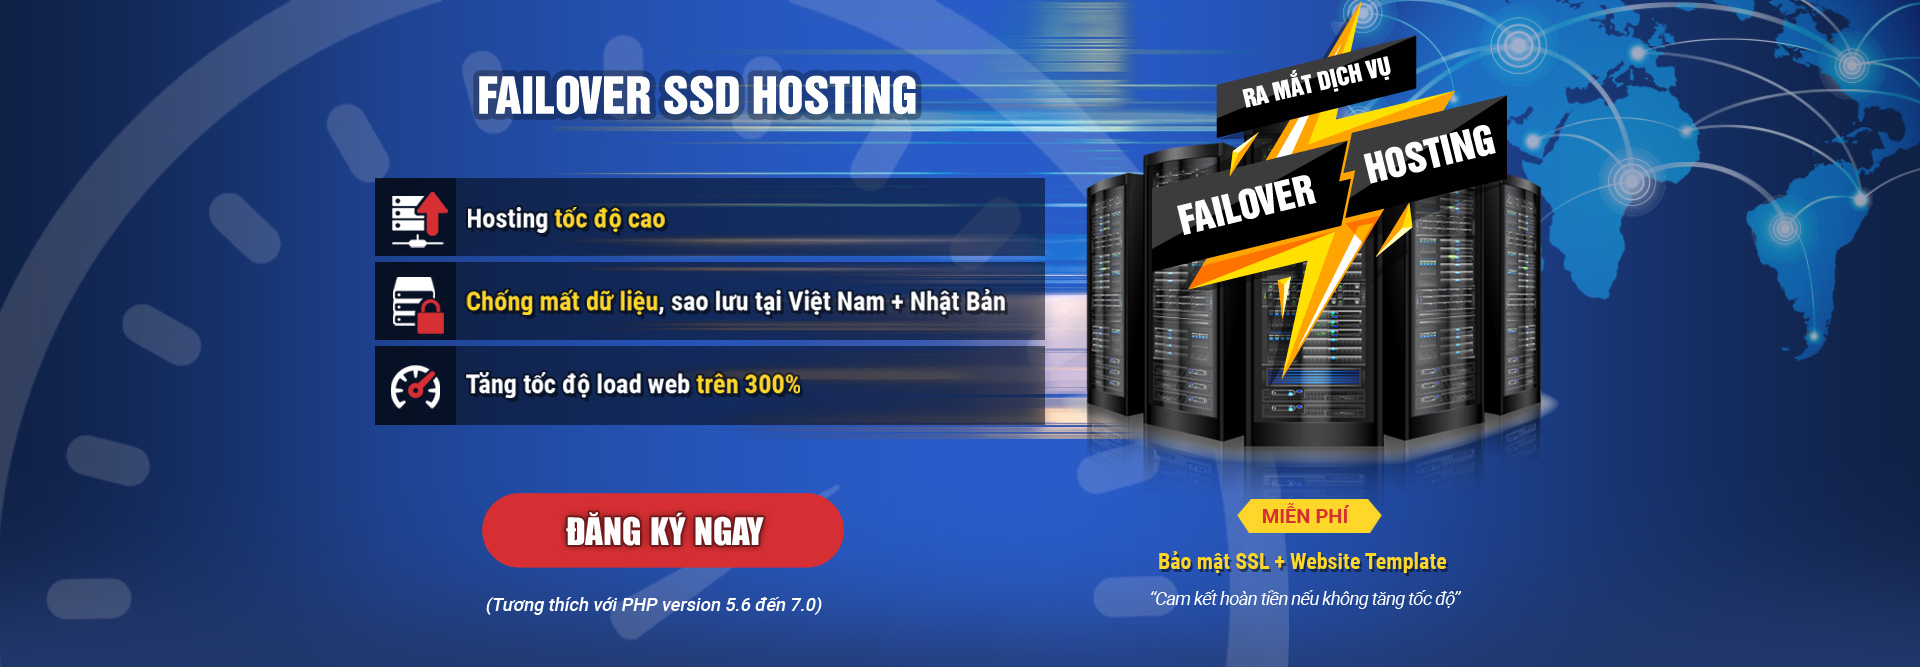 Failover Hosting